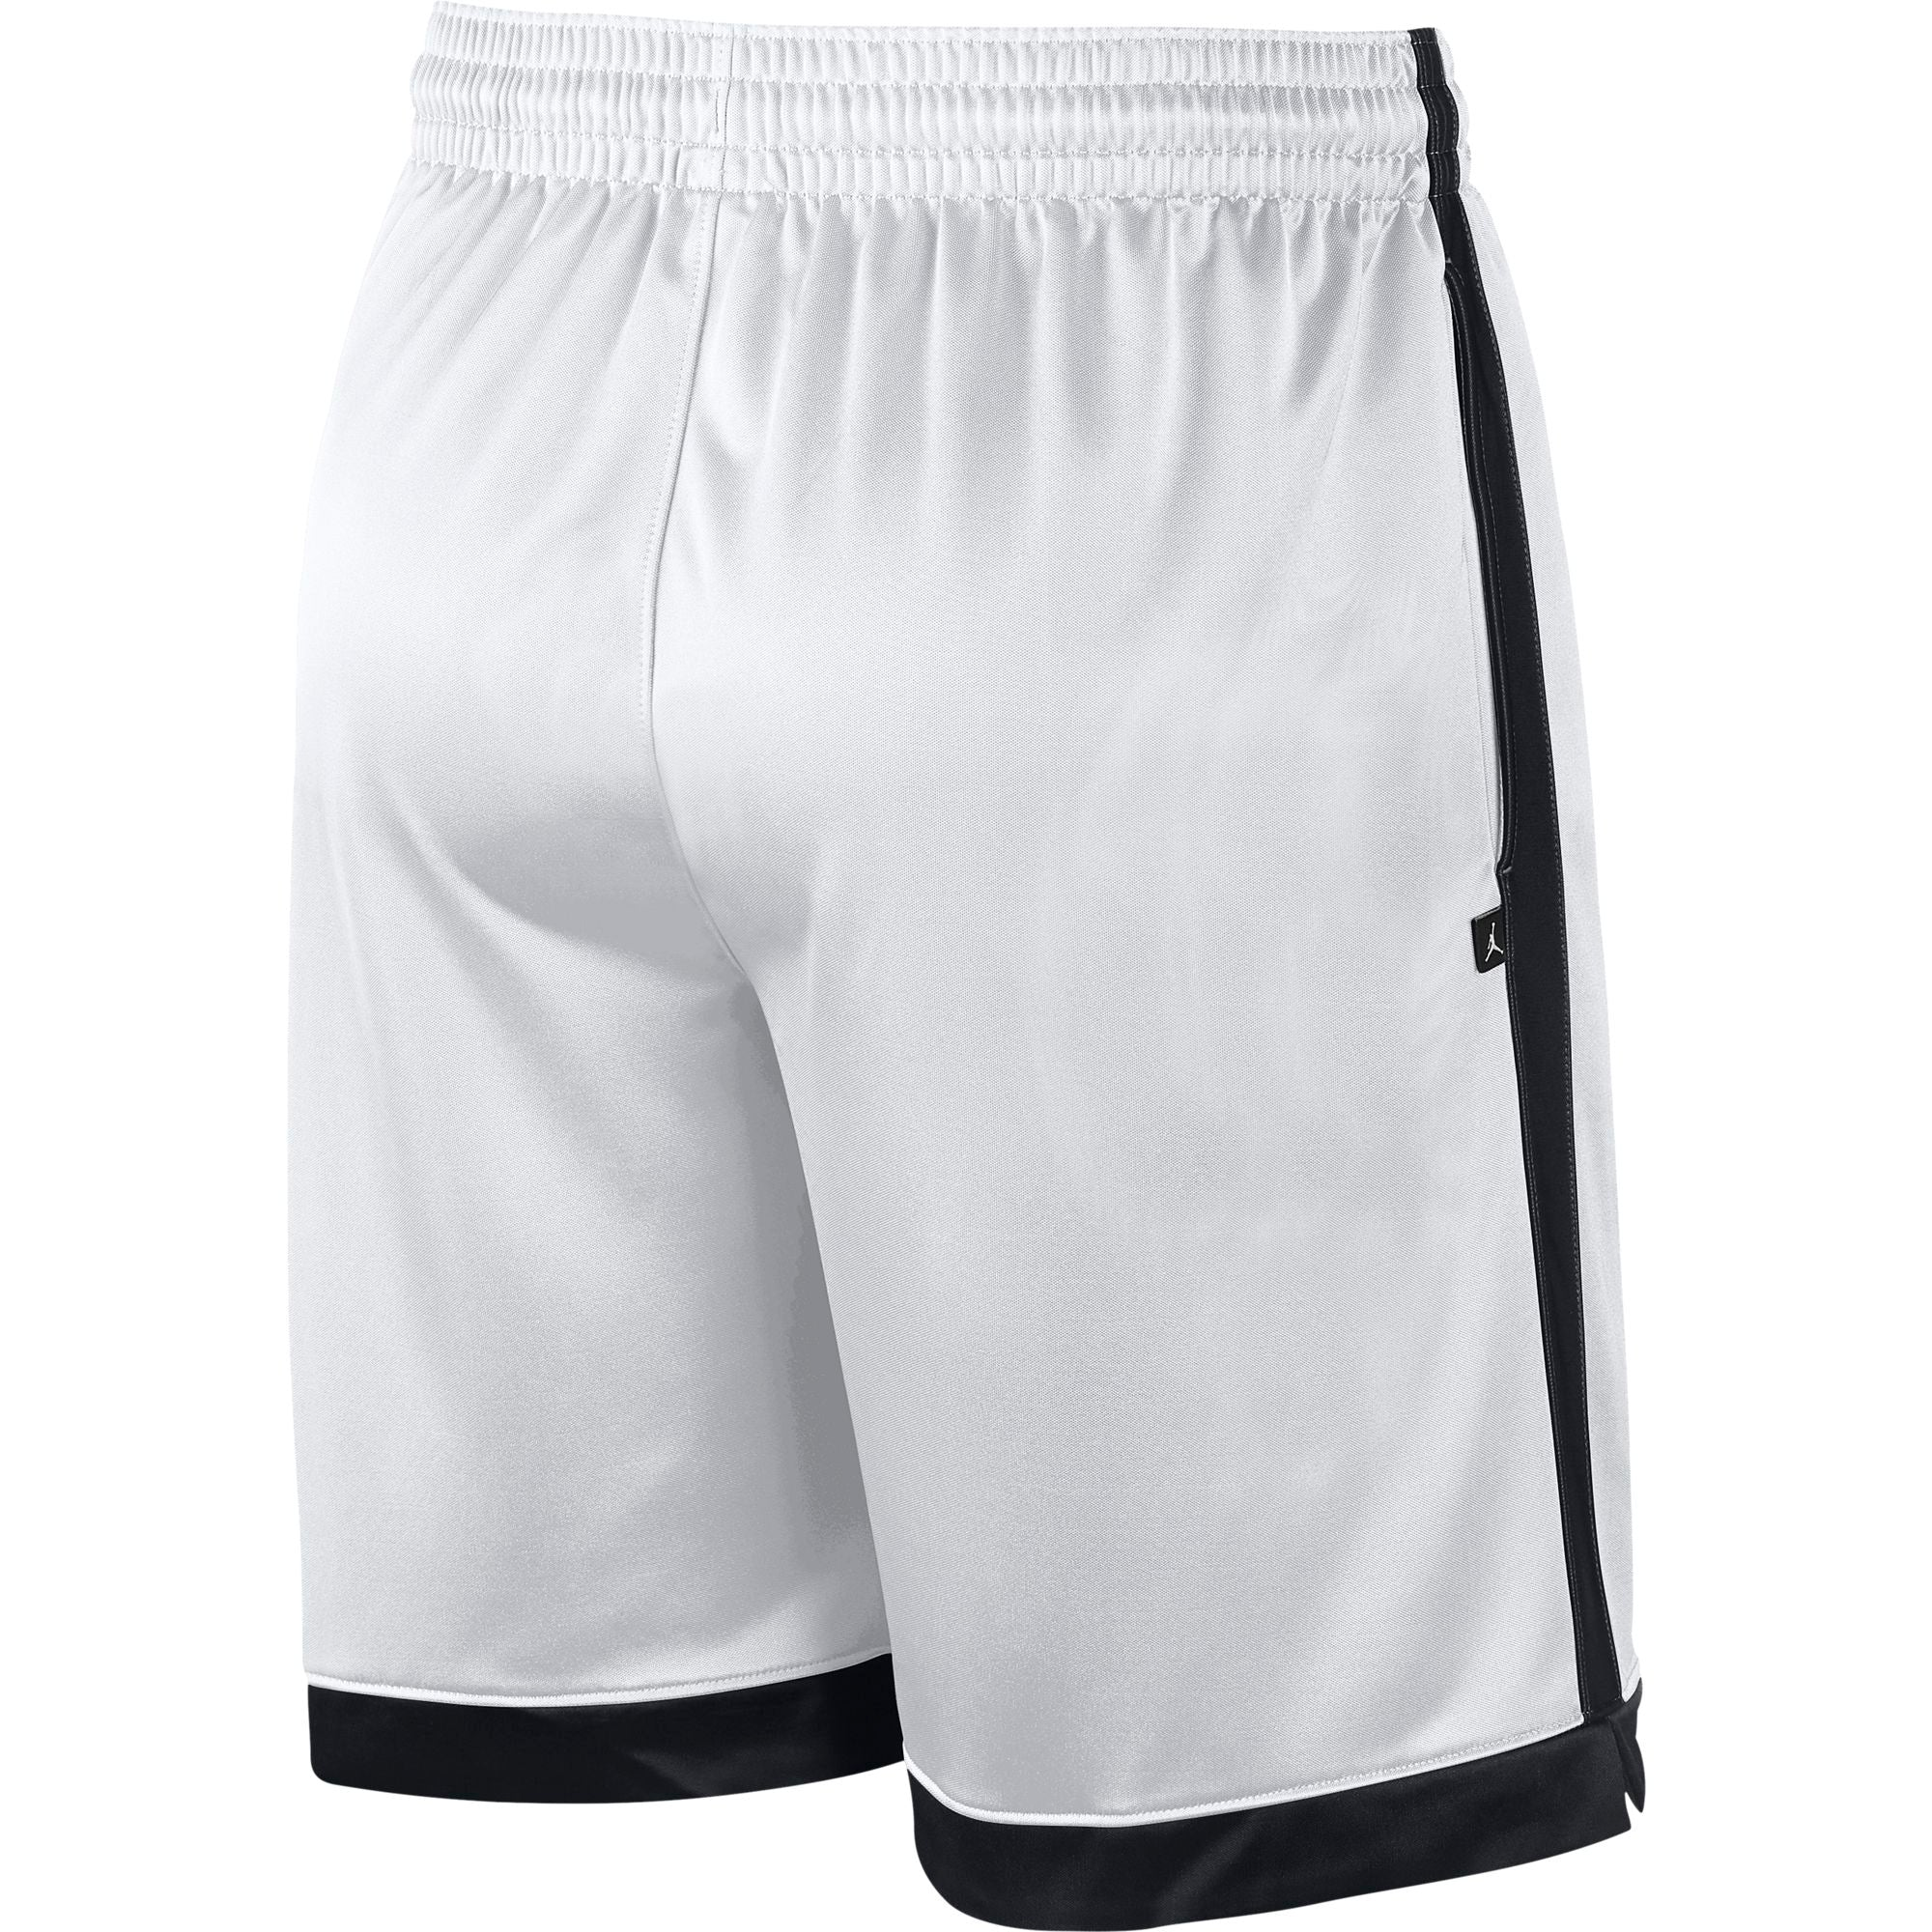 Nike Jordan Shimmer Basketball Shorts - White/Black